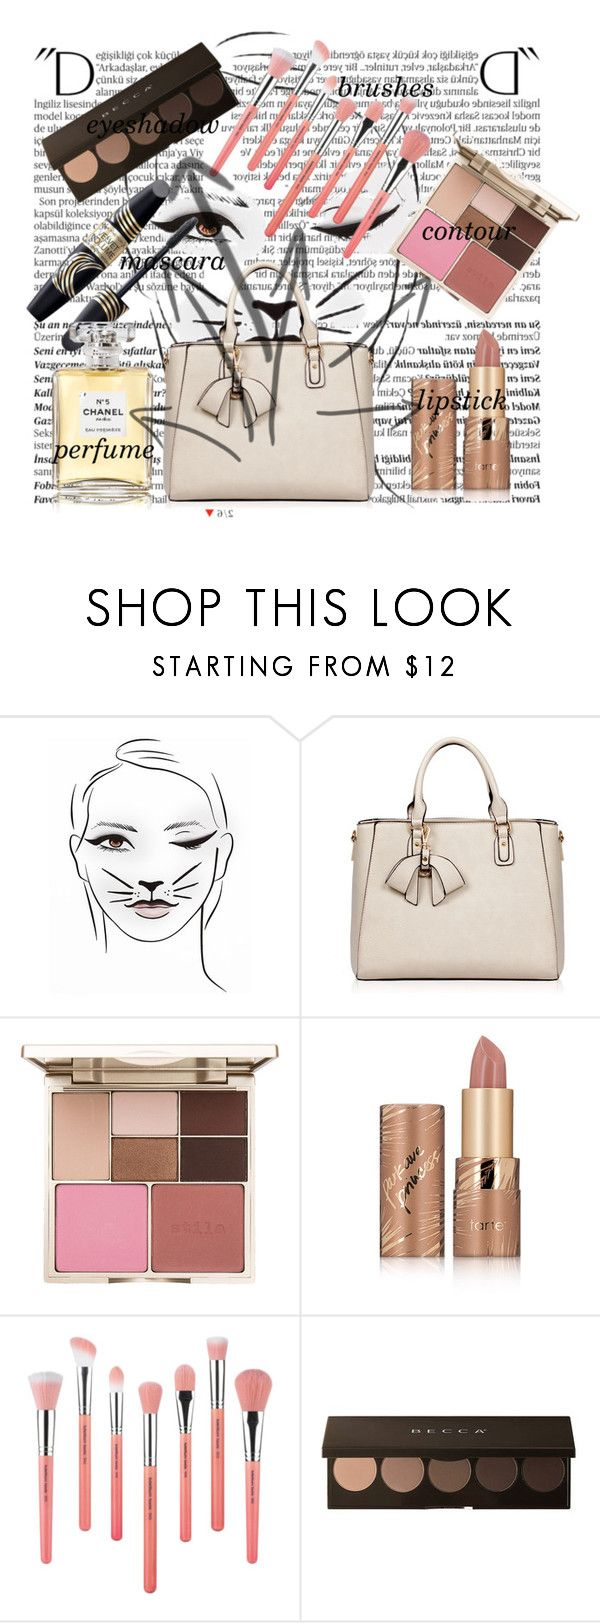 """""""inside the bag"""" by rae-chanel ❤ liked on Polyvore featuring beauty, Balmain, Stila, tarte, Bdellium Tools, Max Factor and Chanel"""